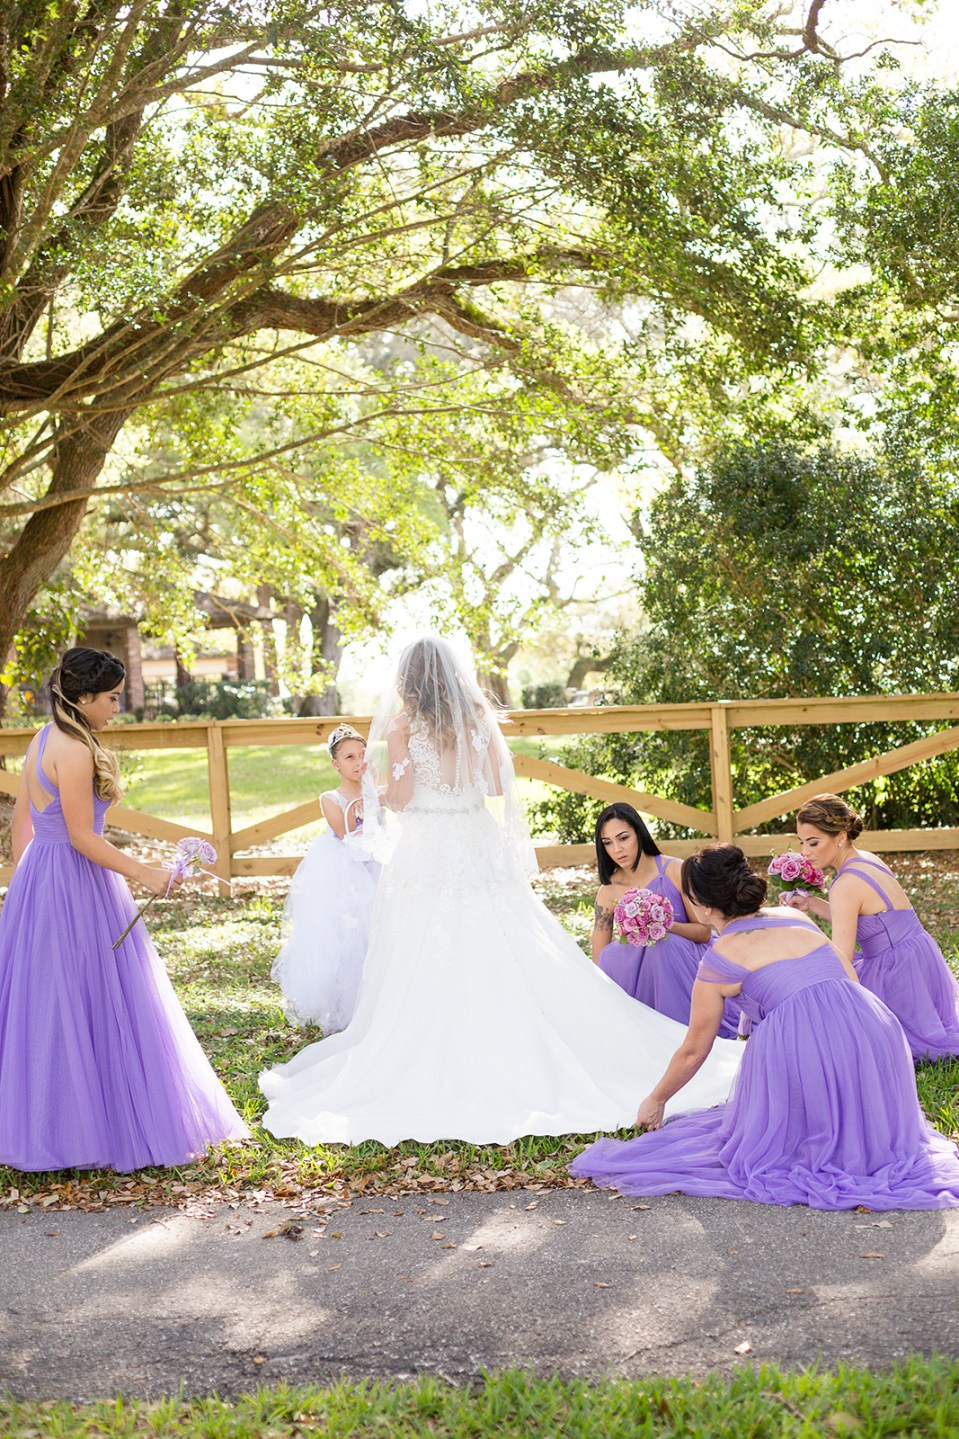 bridesmaids in purple dresses fluffing brides dress